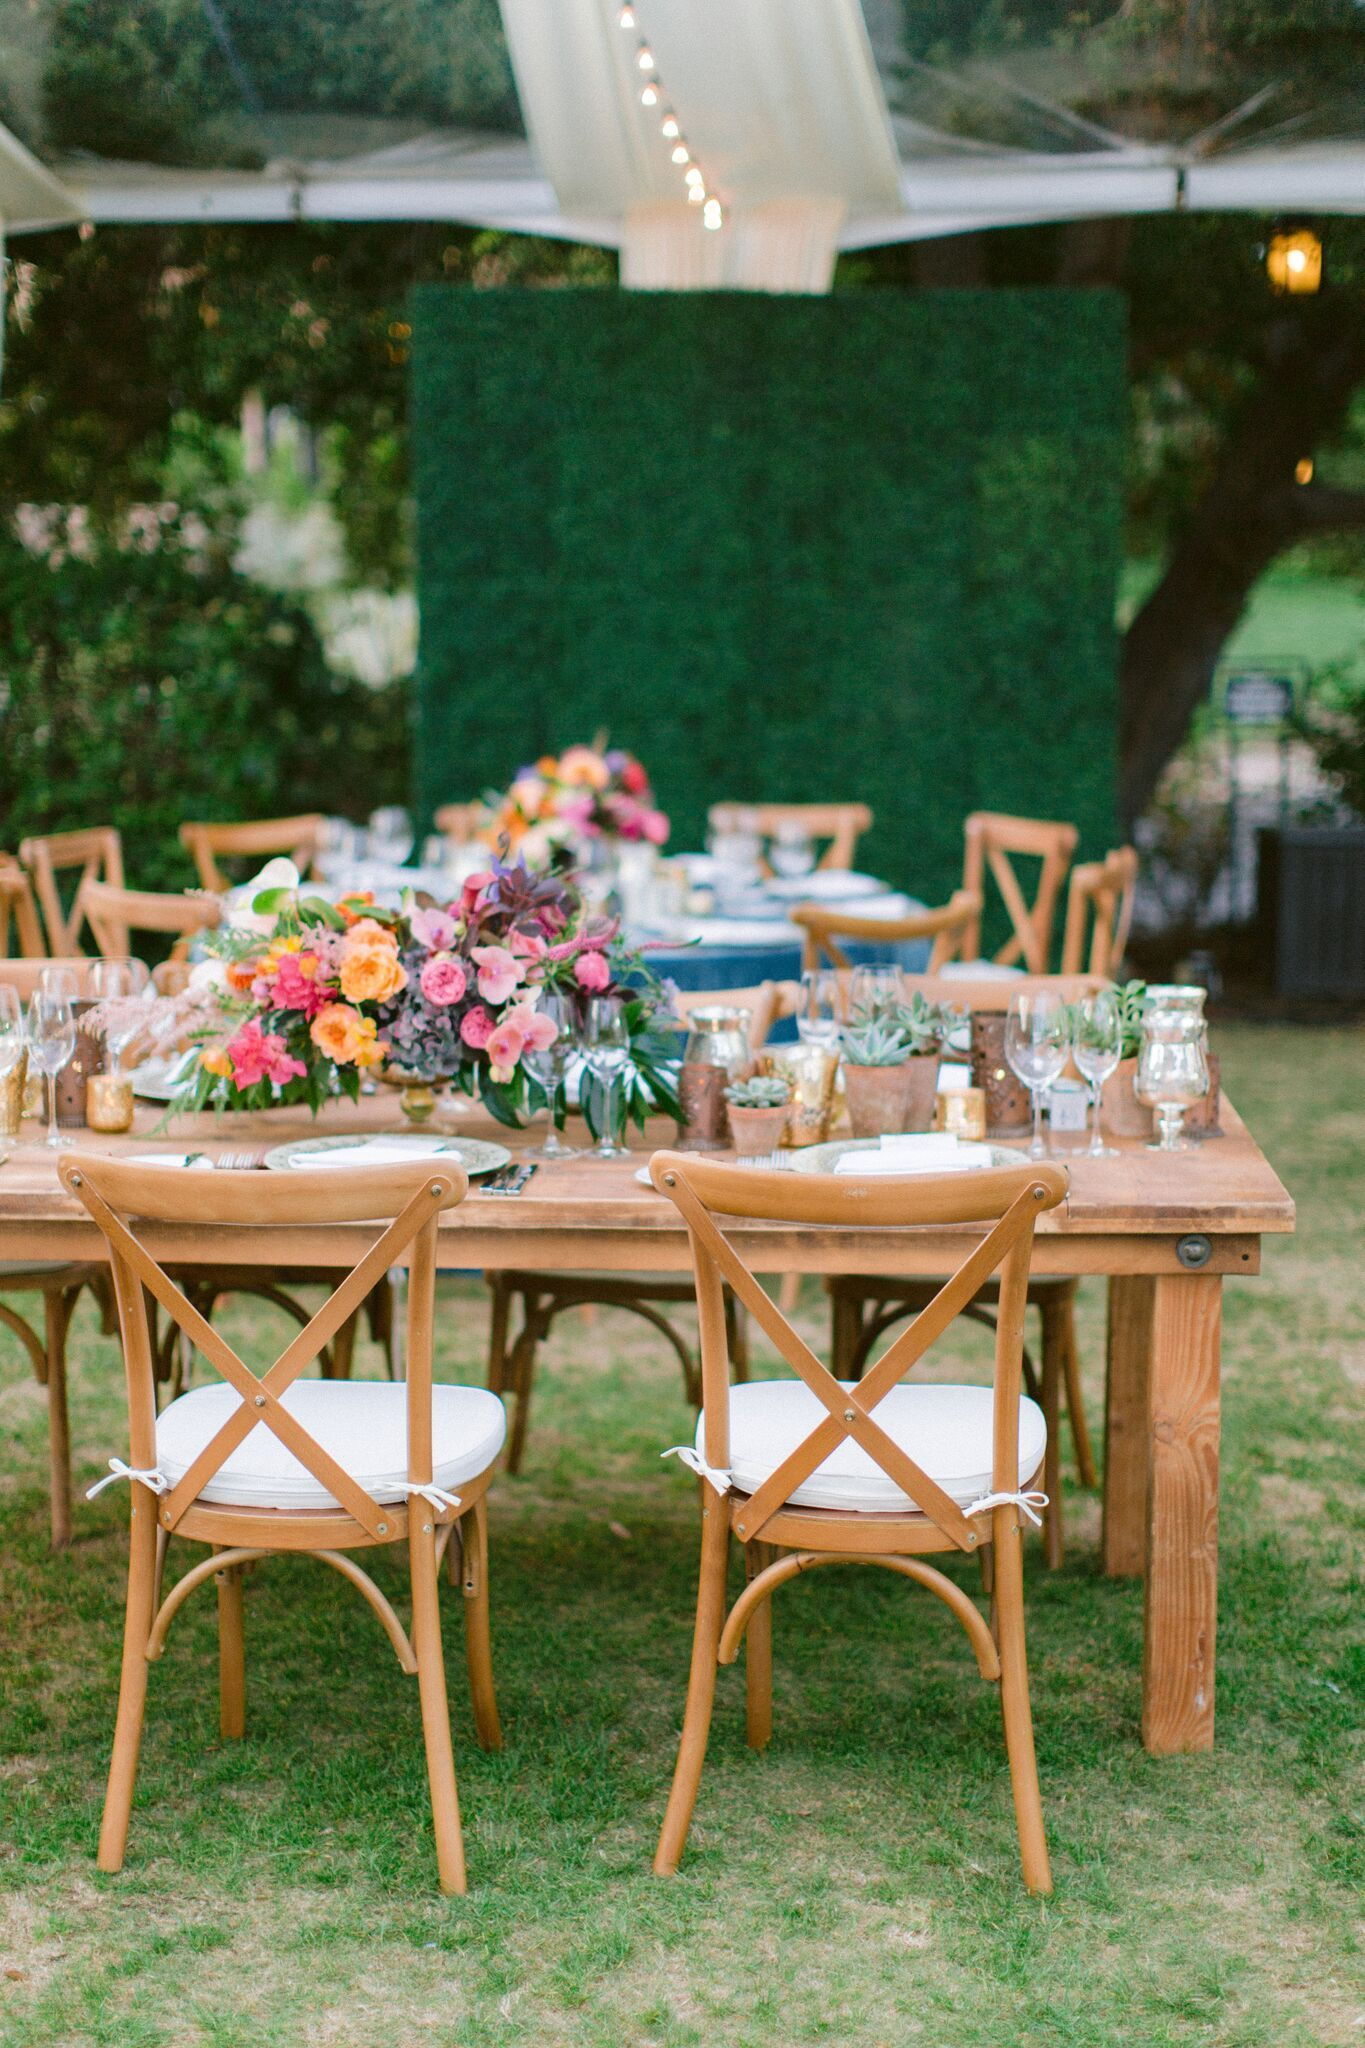 Farm Tables And More San Diego Table Rentals San Diego Wedding Rentals Southern California We Wedding Southern California Rustic Table Decor Dinner Themes